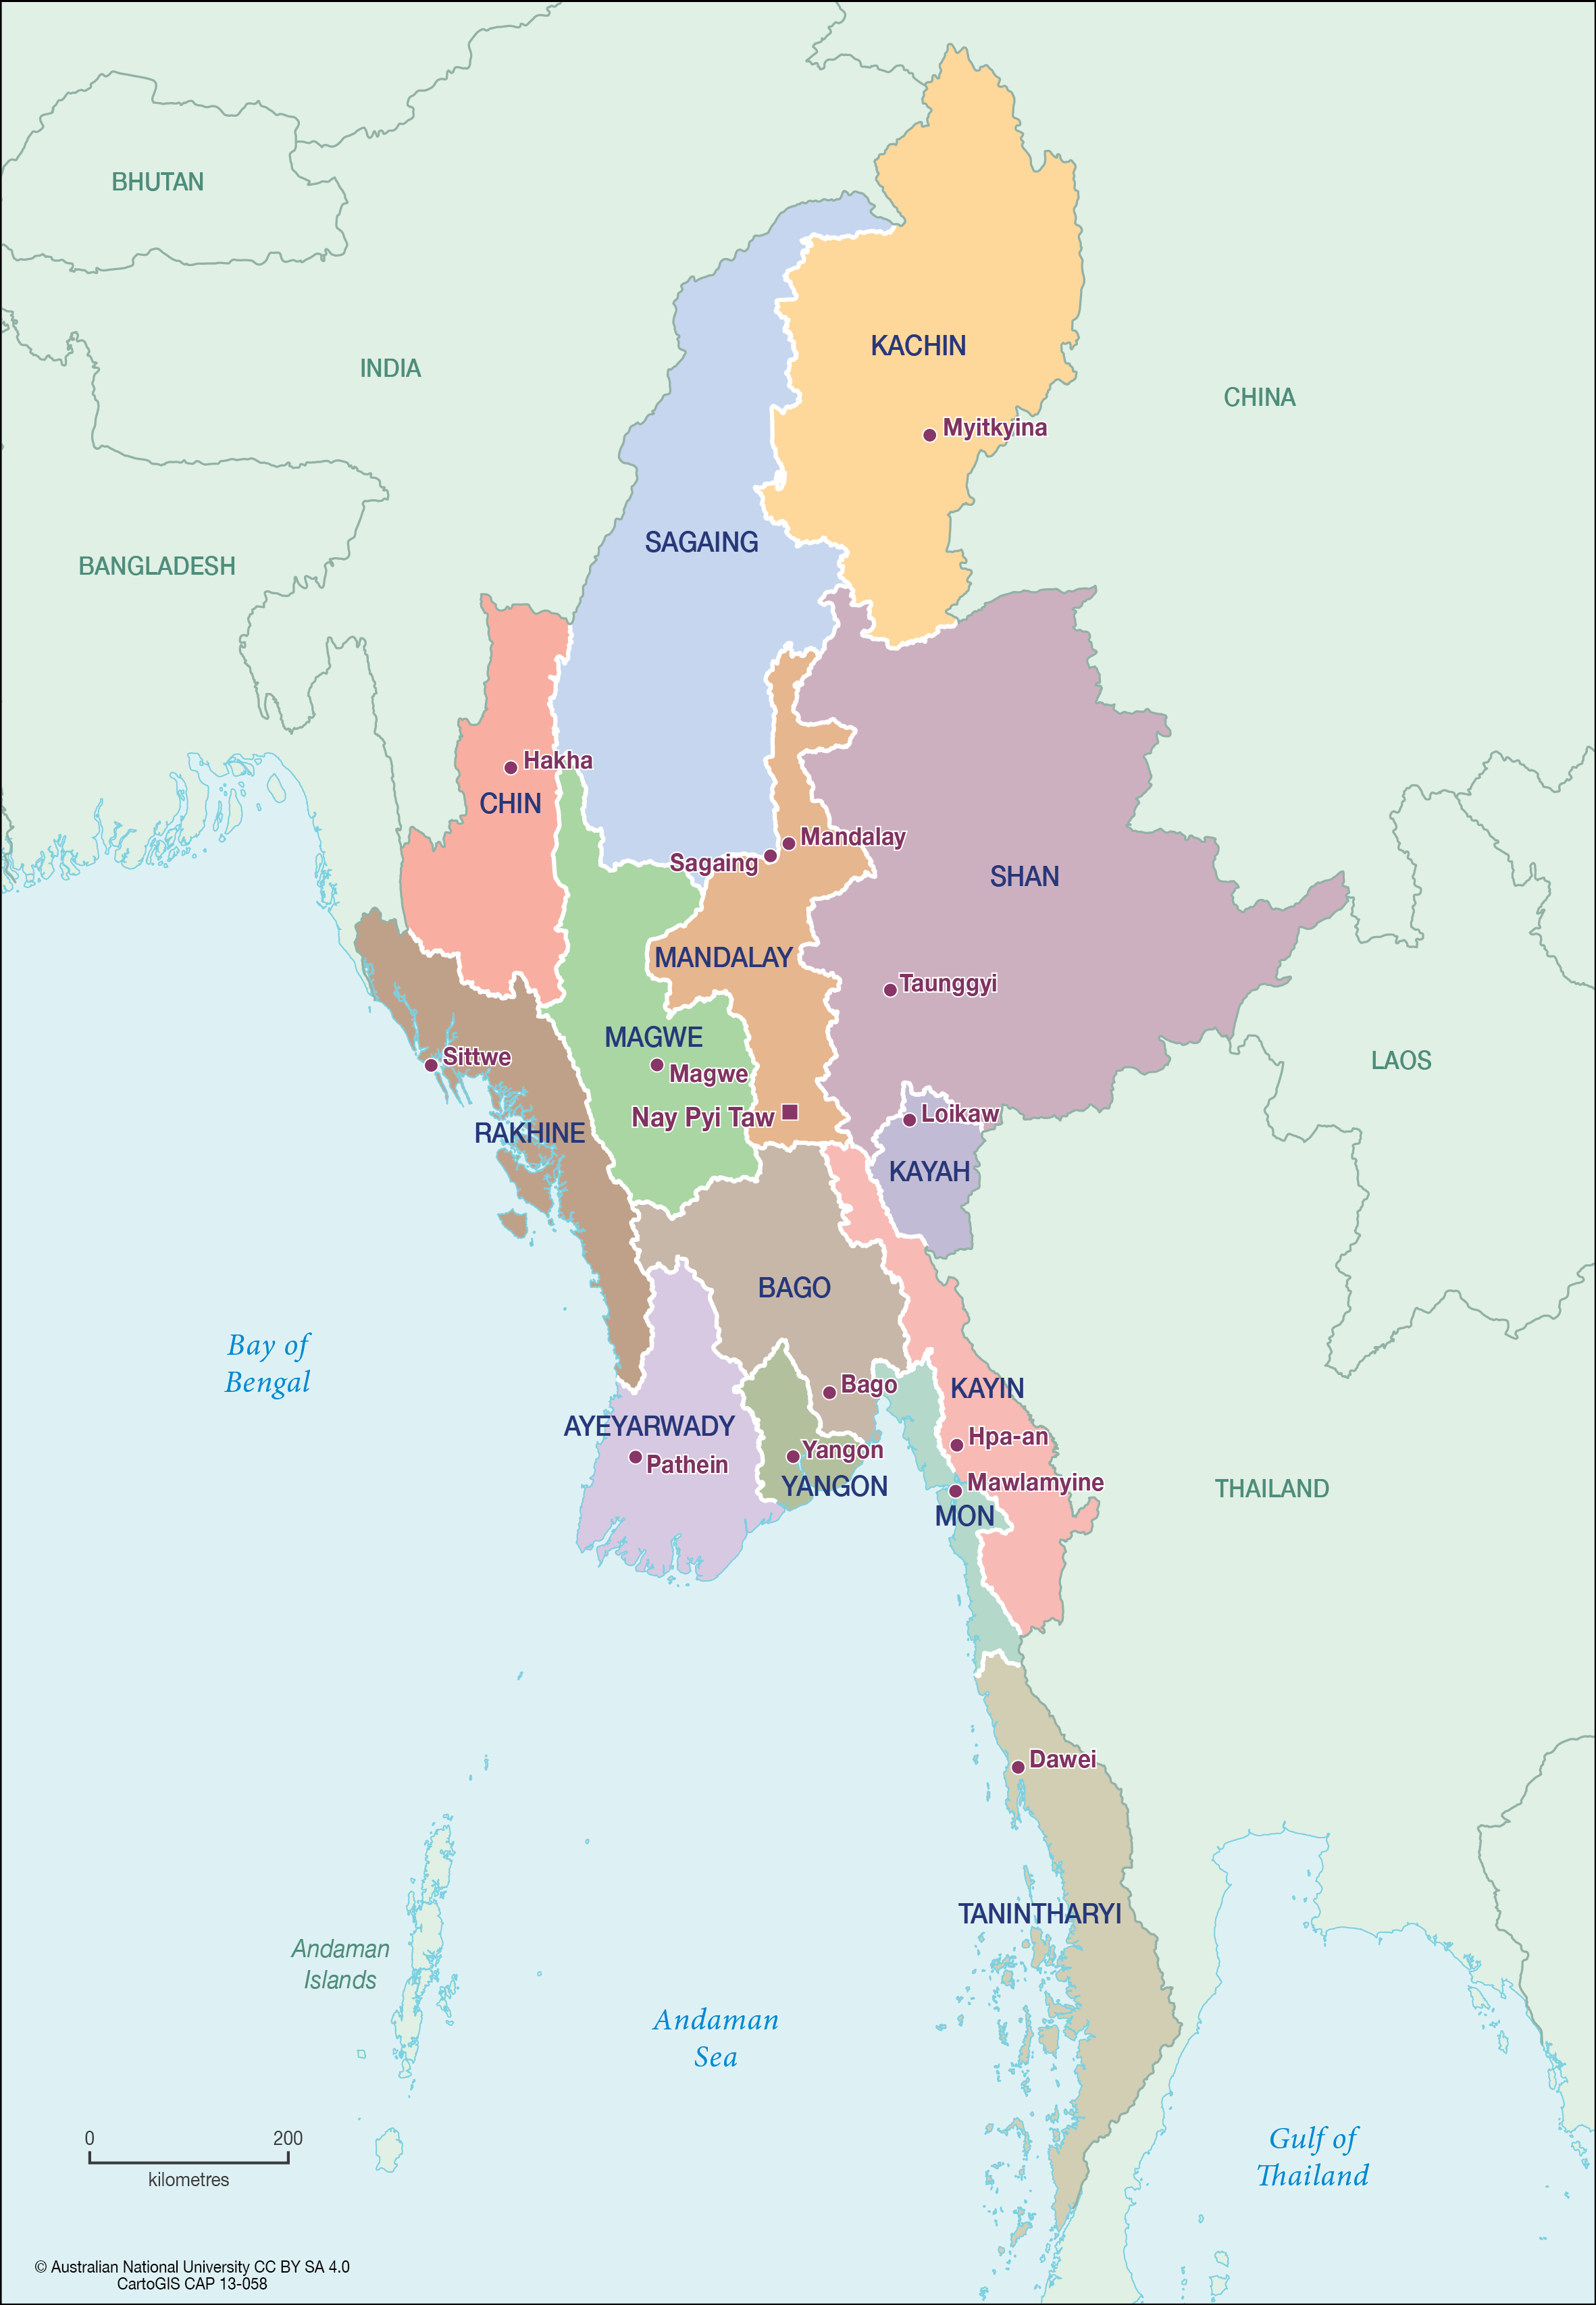 Myanmar states/regions - CartoGIS Services Maps Online - ANU